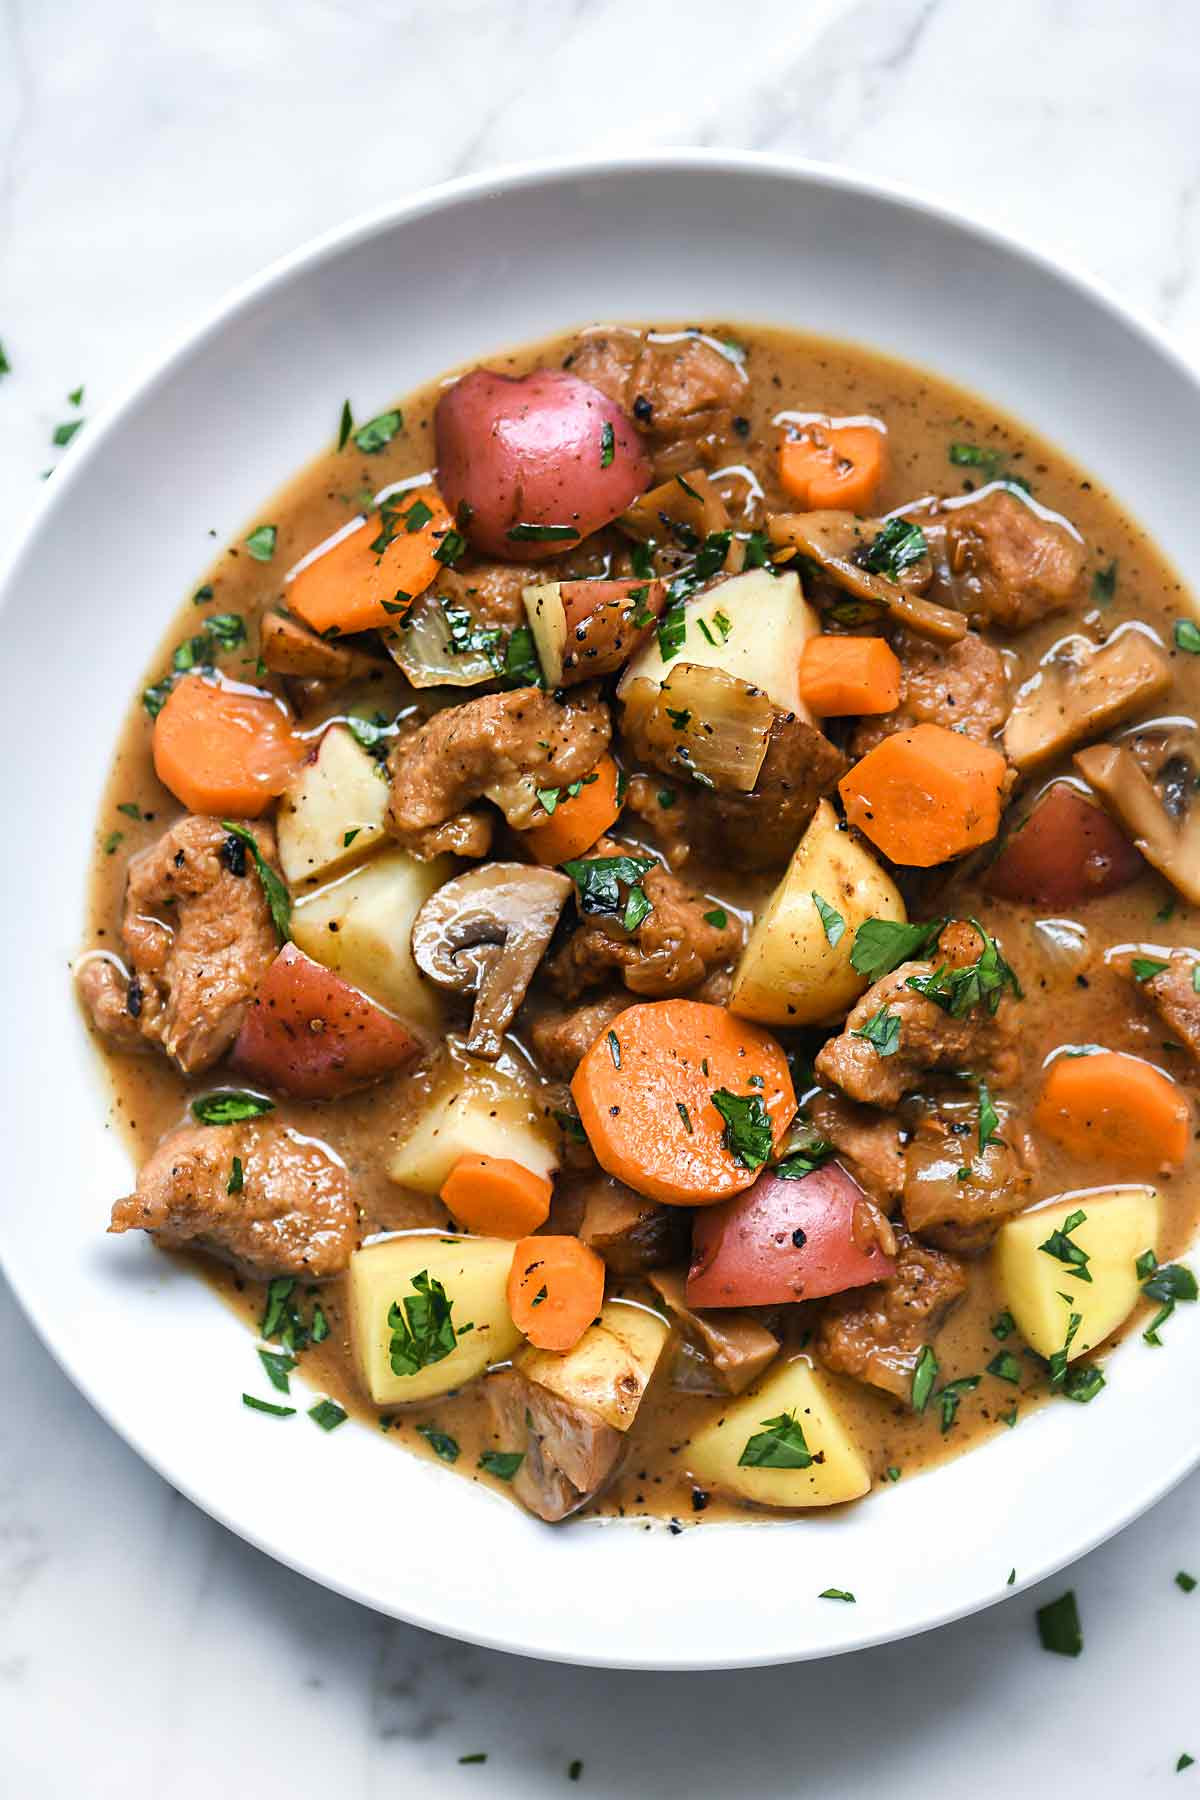 Pork Stew Recipes  Irish Pork Stew with Stout and Caraway Seeds